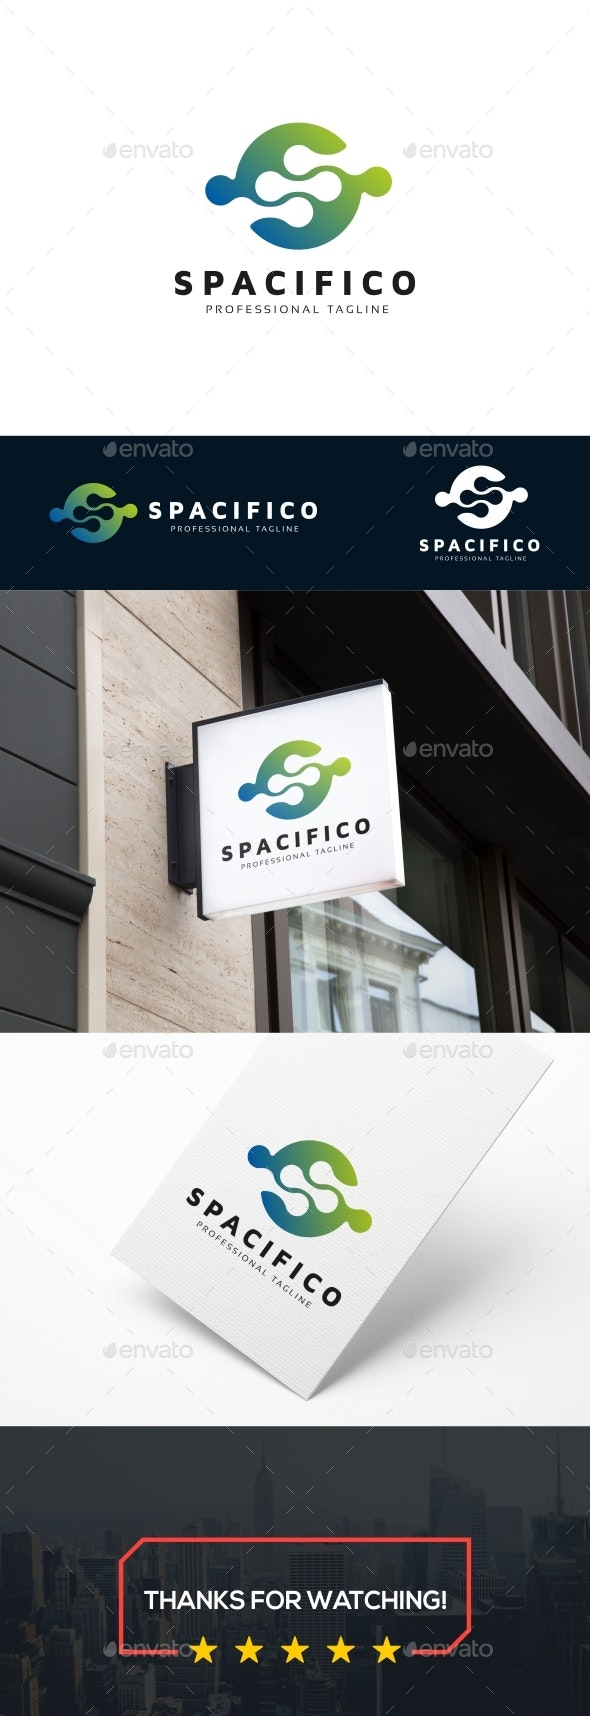 S Letter - Spacifico Logo - Letters Logo Templates